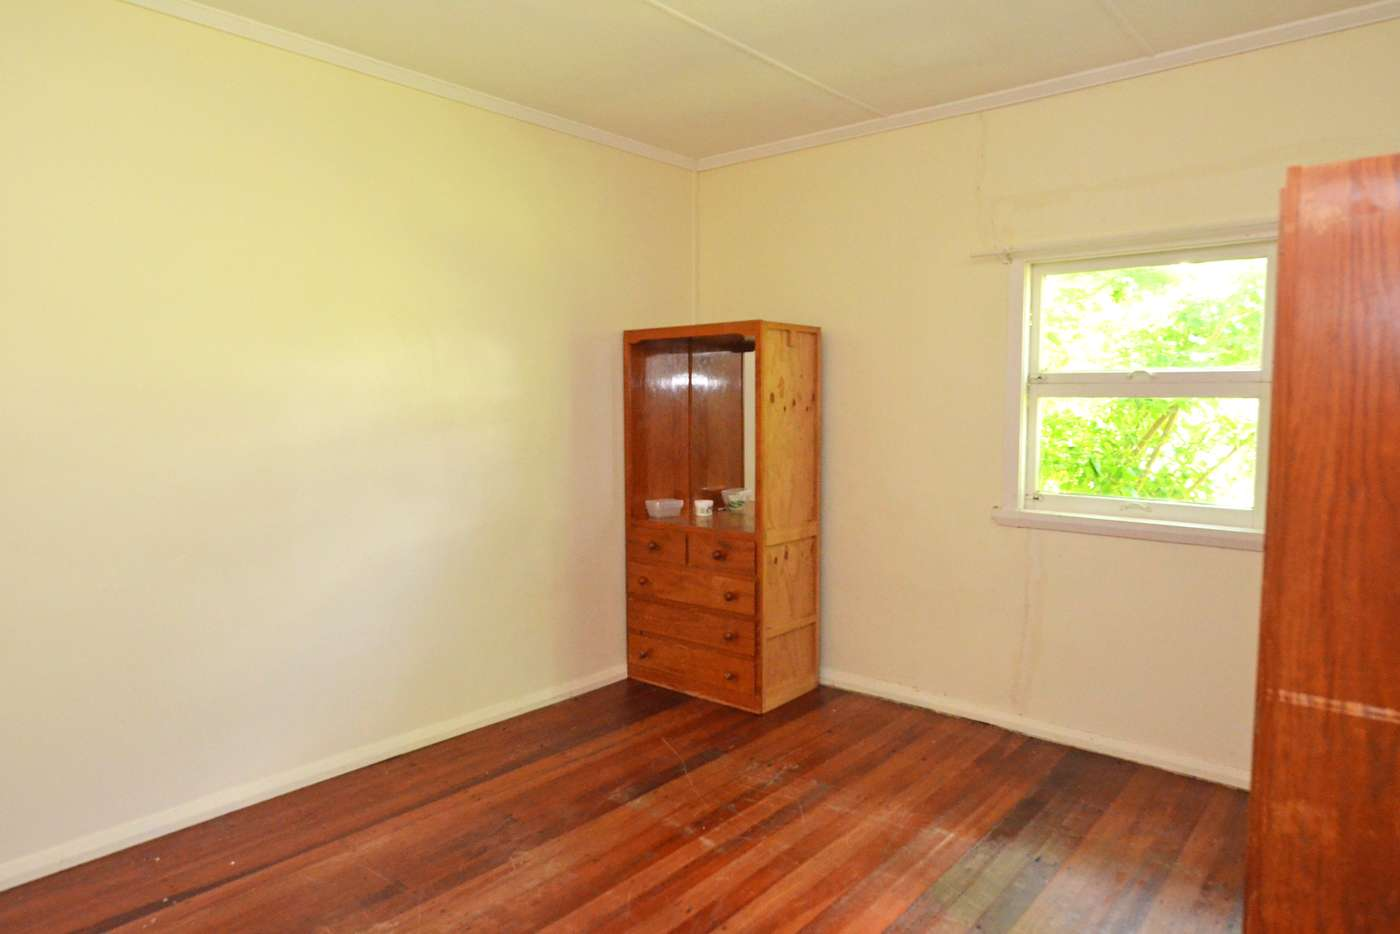 Sixth view of Homely house listing, 21 Couper Street, Mareeba QLD 4880